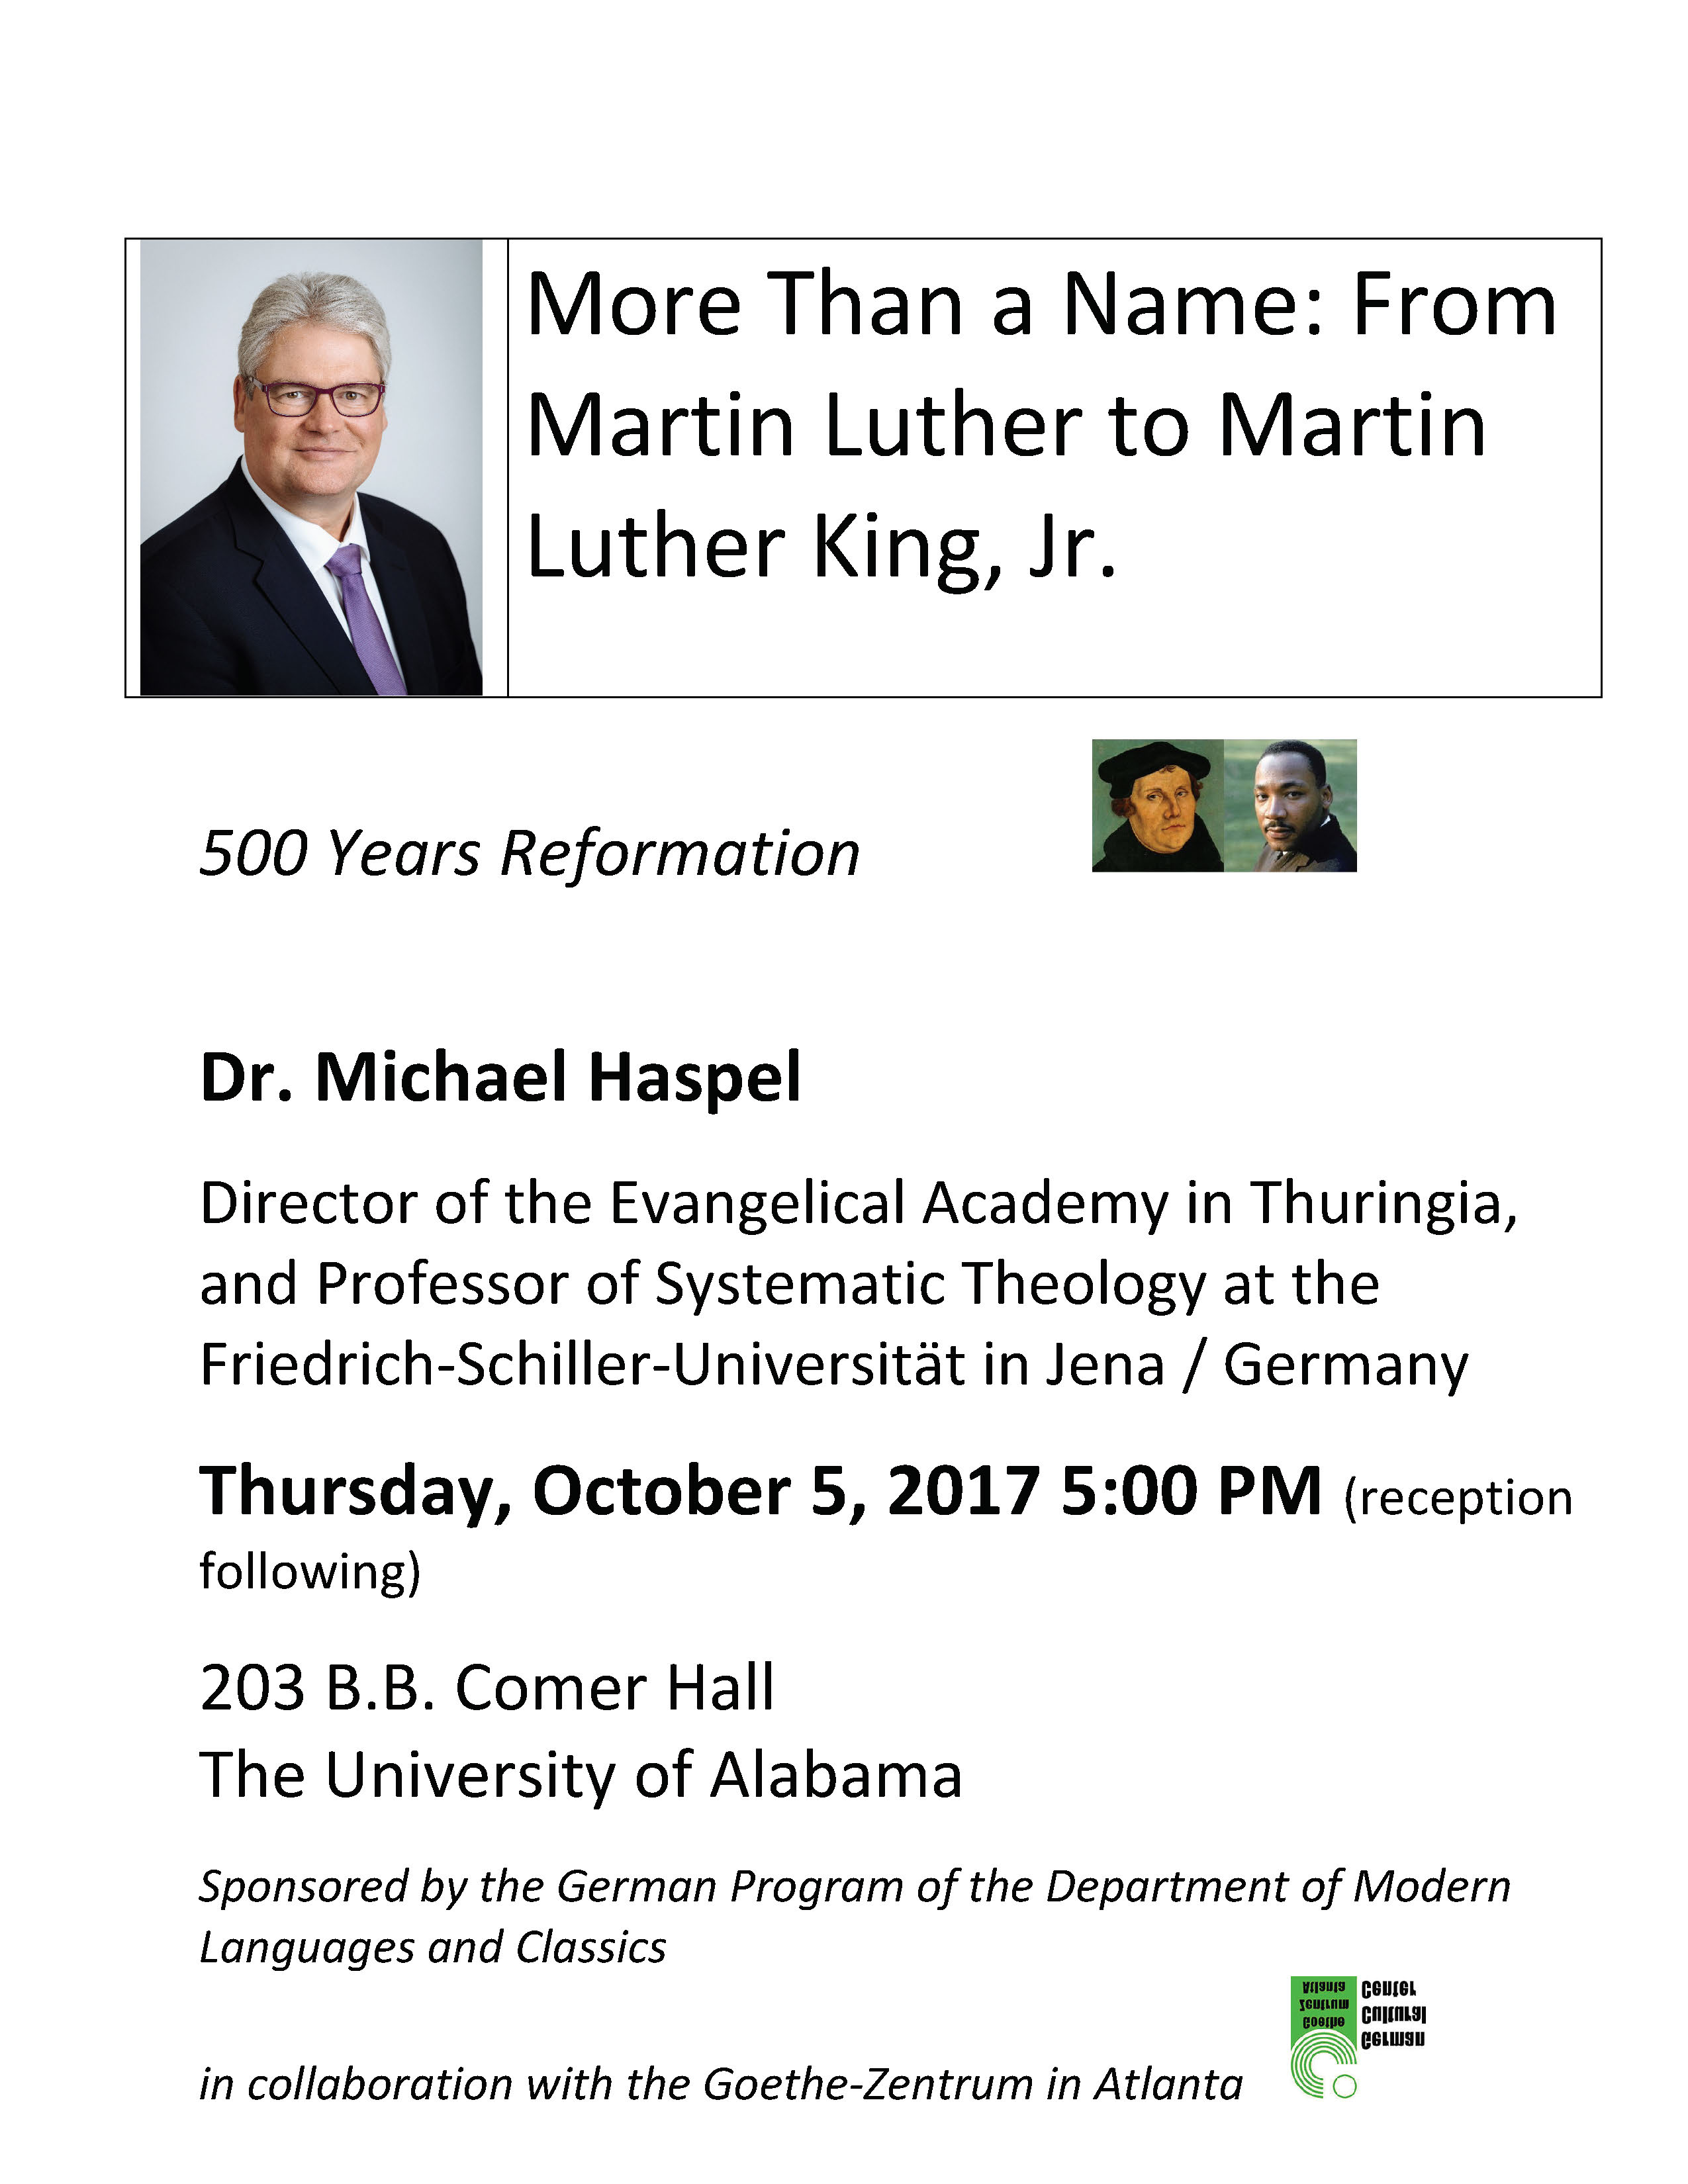 More than a Name: From Martin Luther to Martin Luther King, Jr.: 500 Years Reformation flyer